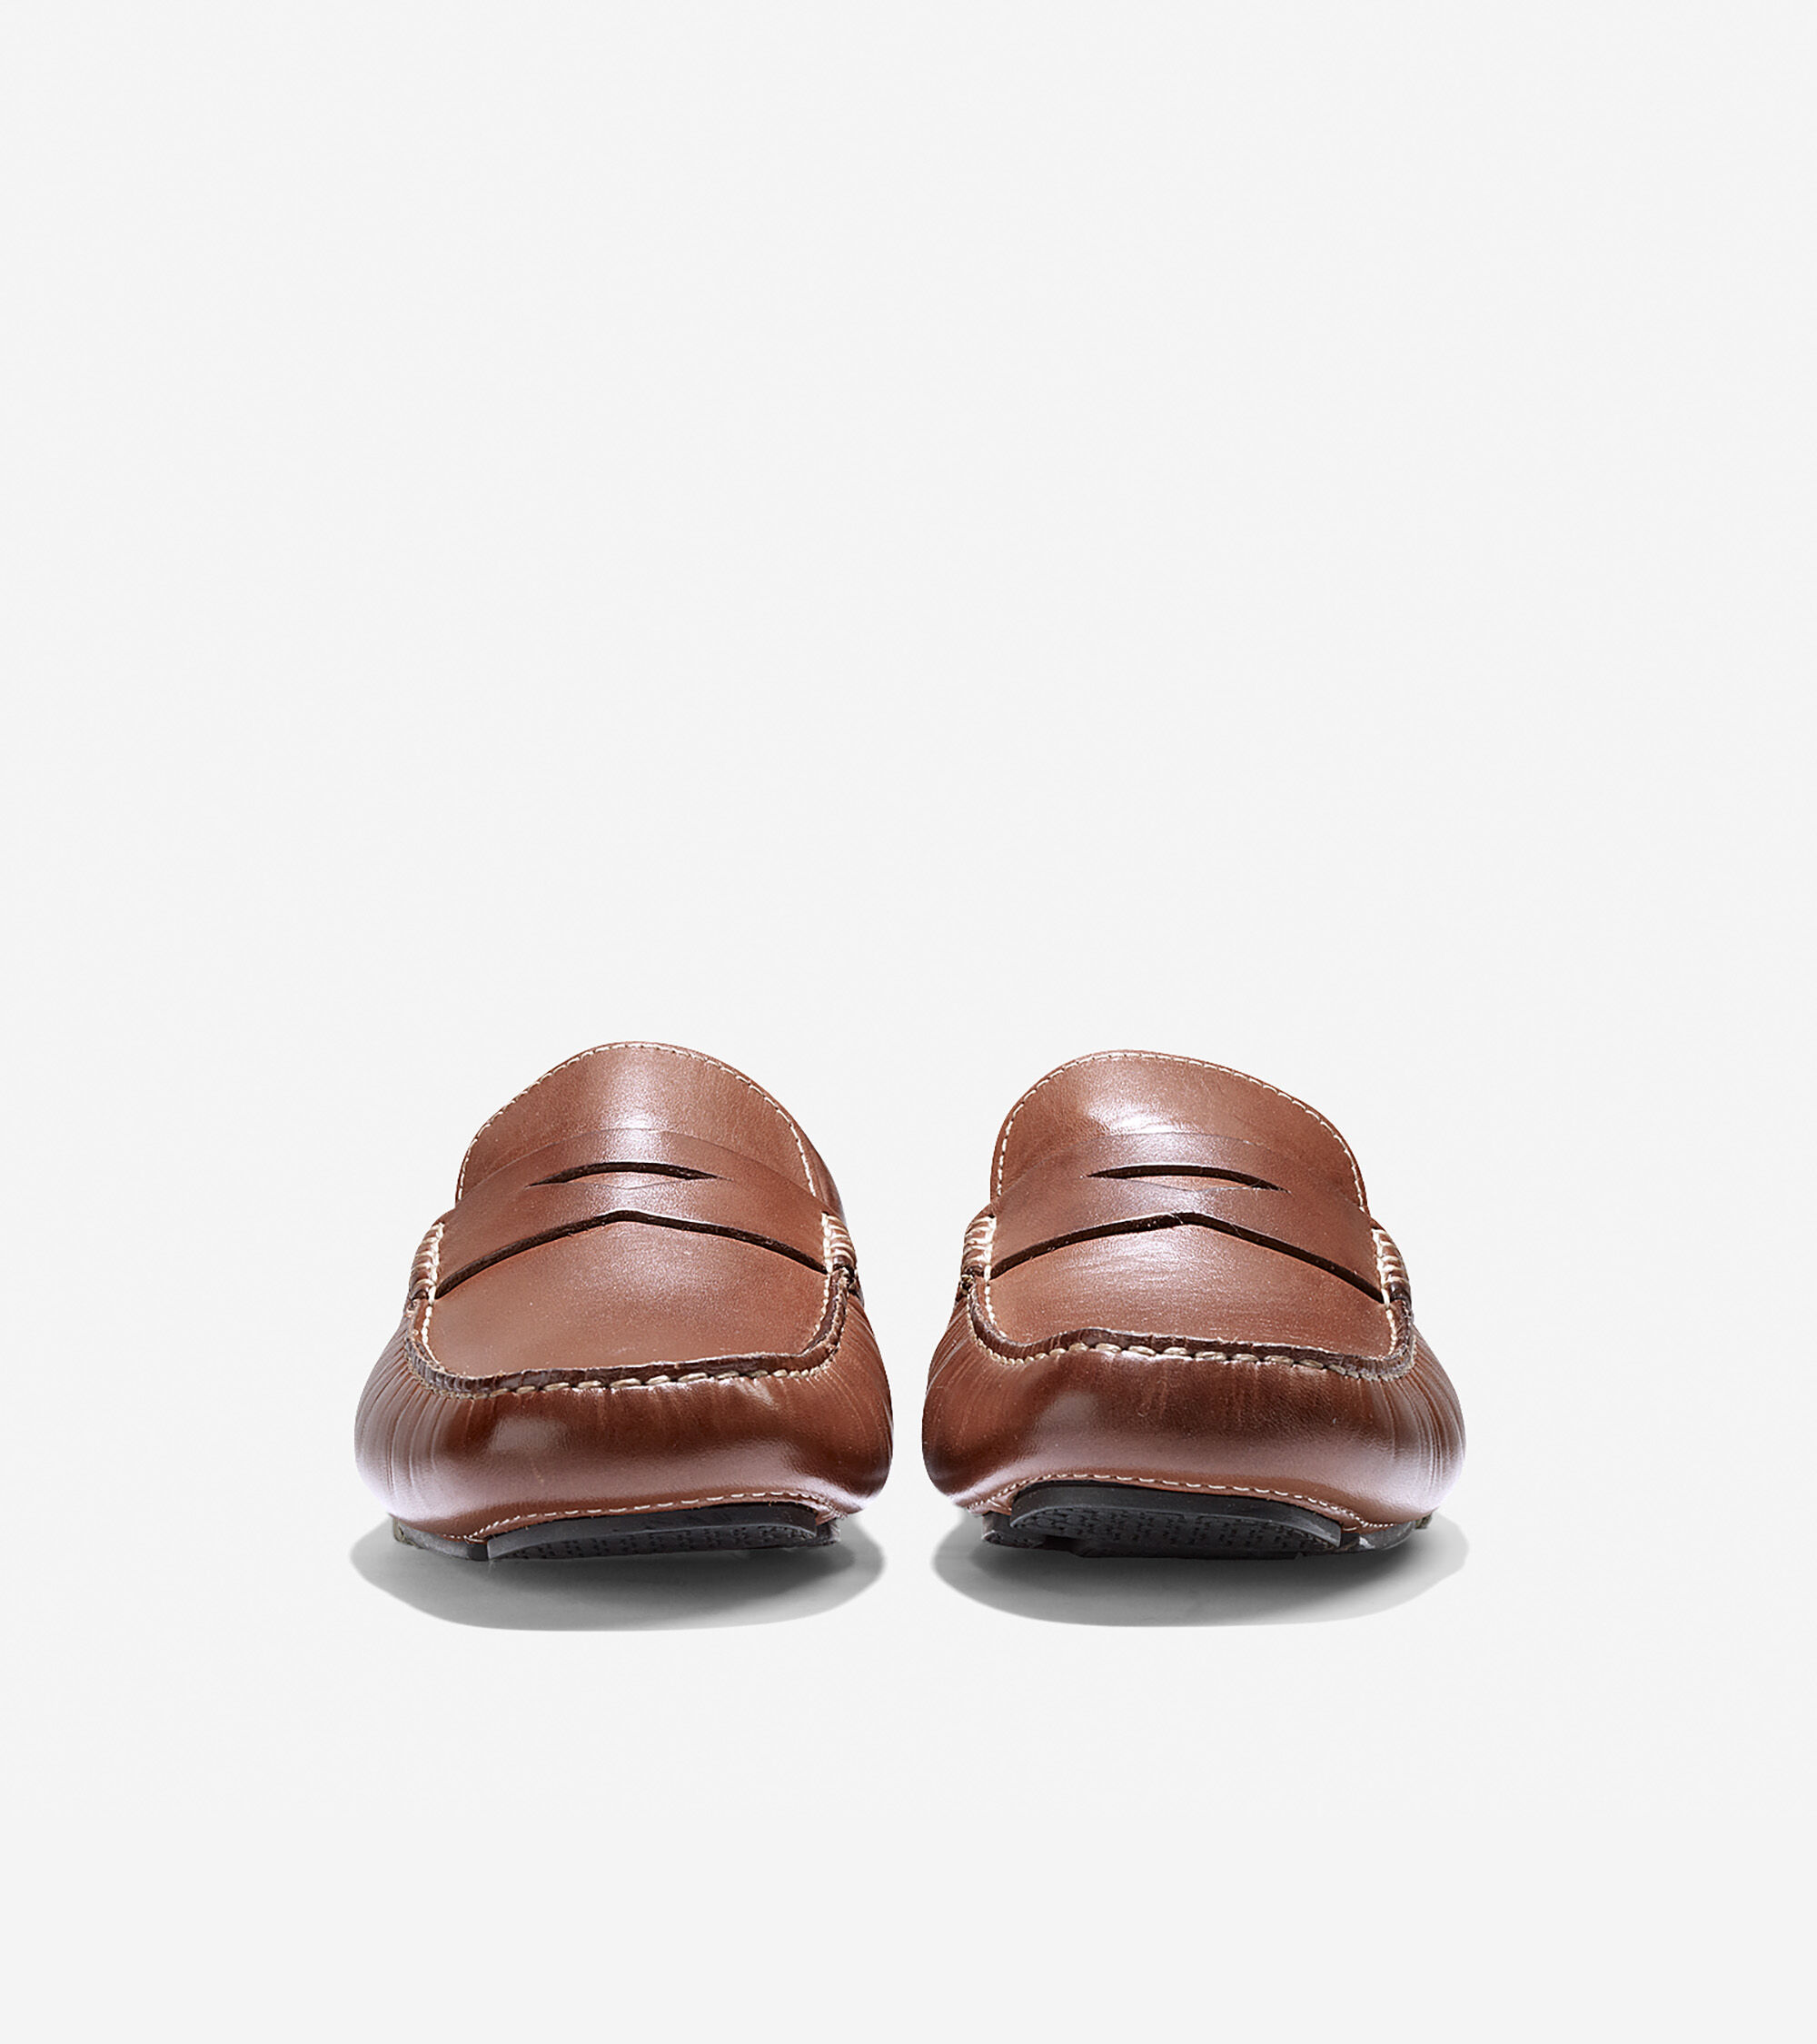 67b225c1d56 Howland Penny Loafer  Howland Penny Loafer ...